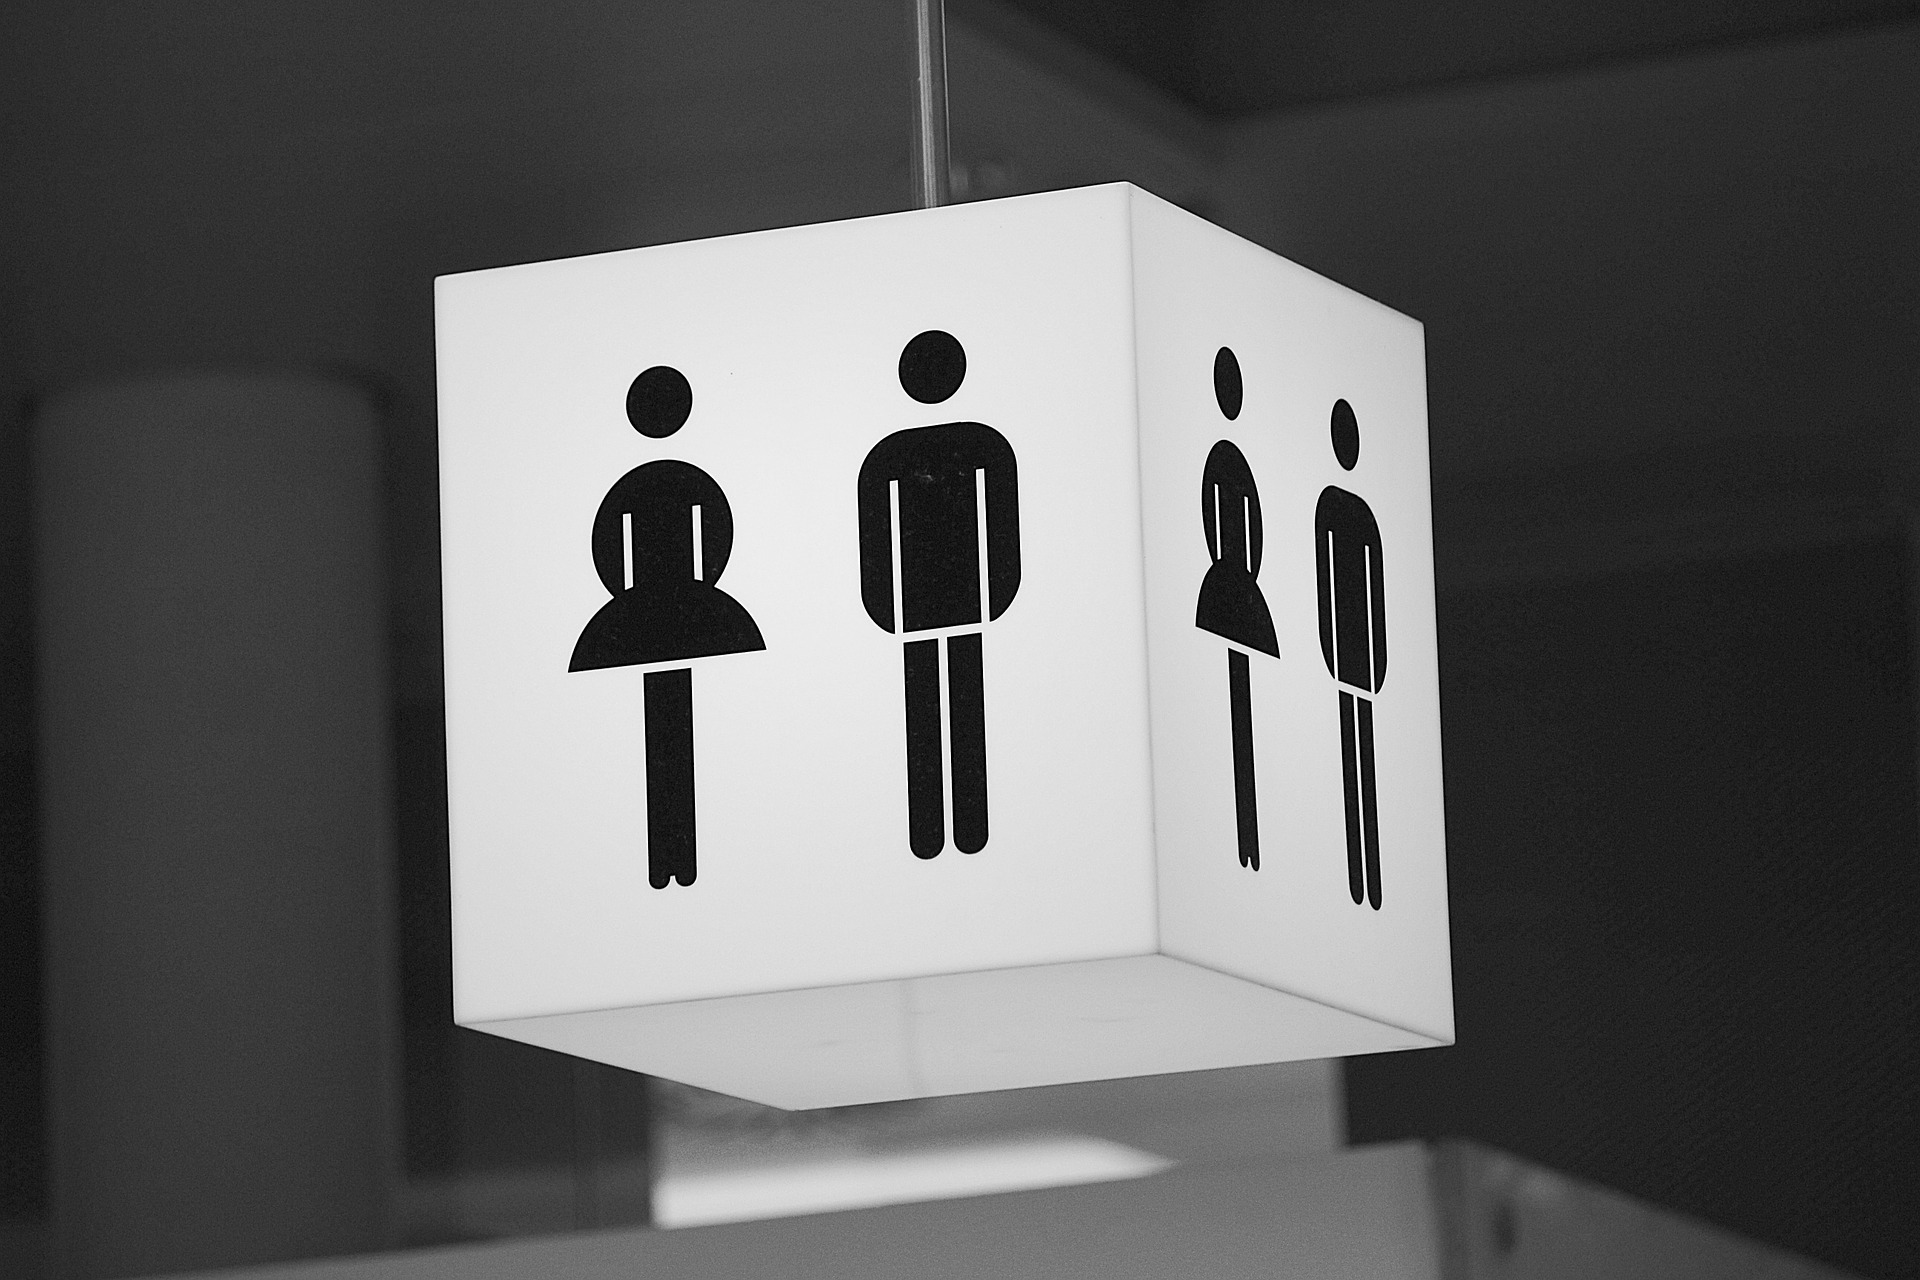 Is It Safe To Use A Public Restroom Amid Coronavirus Pandemic?